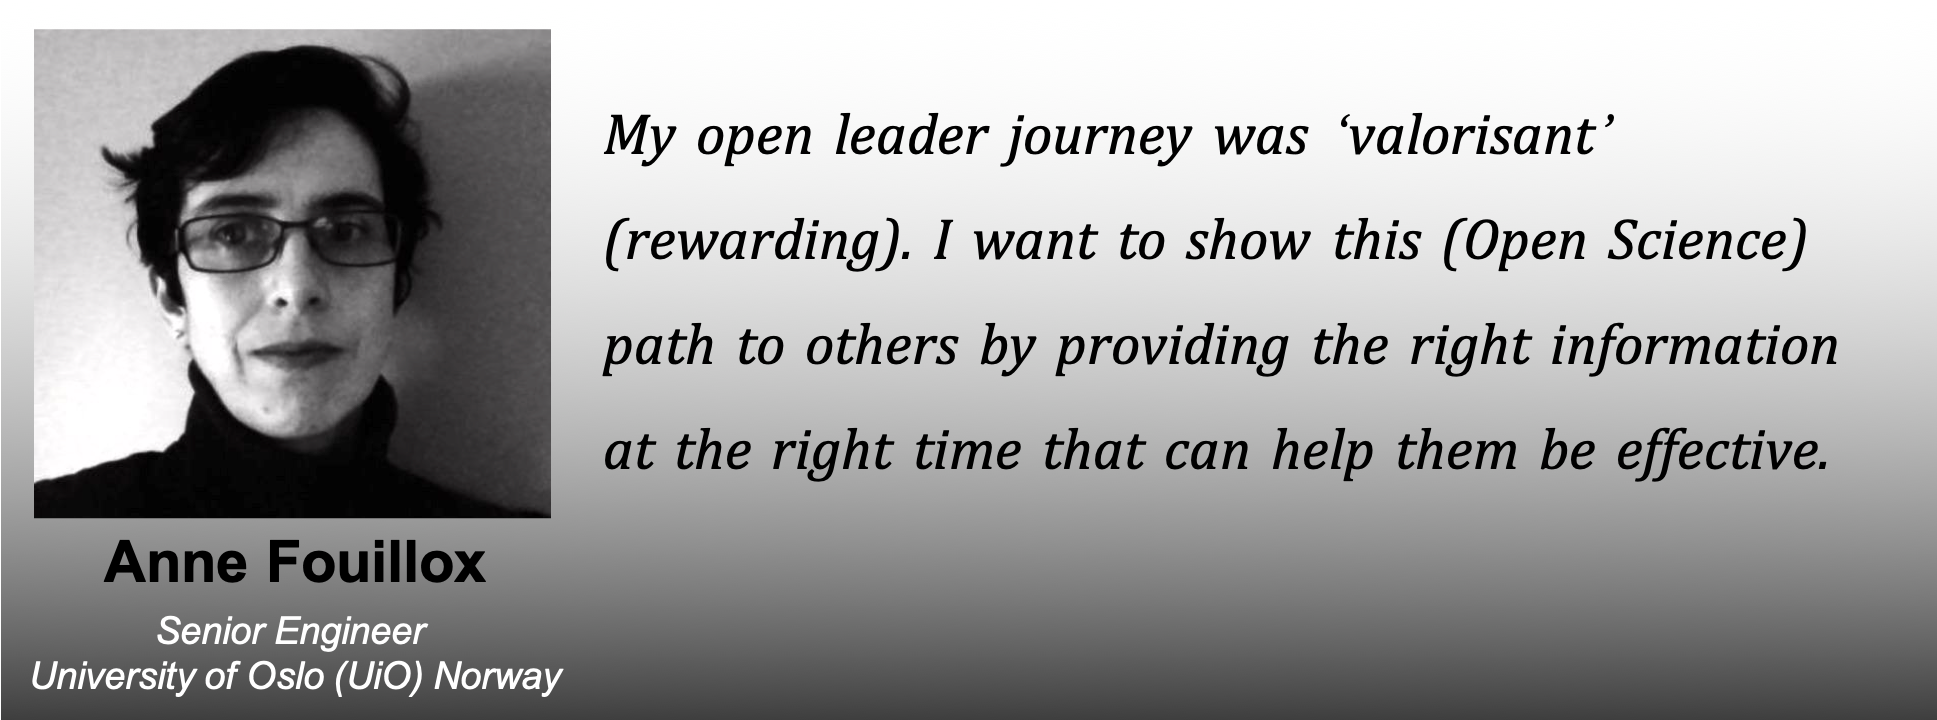 "Picture of Anne with the caption: ""my open leader journey was 'valorisant' (rewarding). I want to show this (Open Science) path to others by providing the right information at the right time that can help them be effective"""